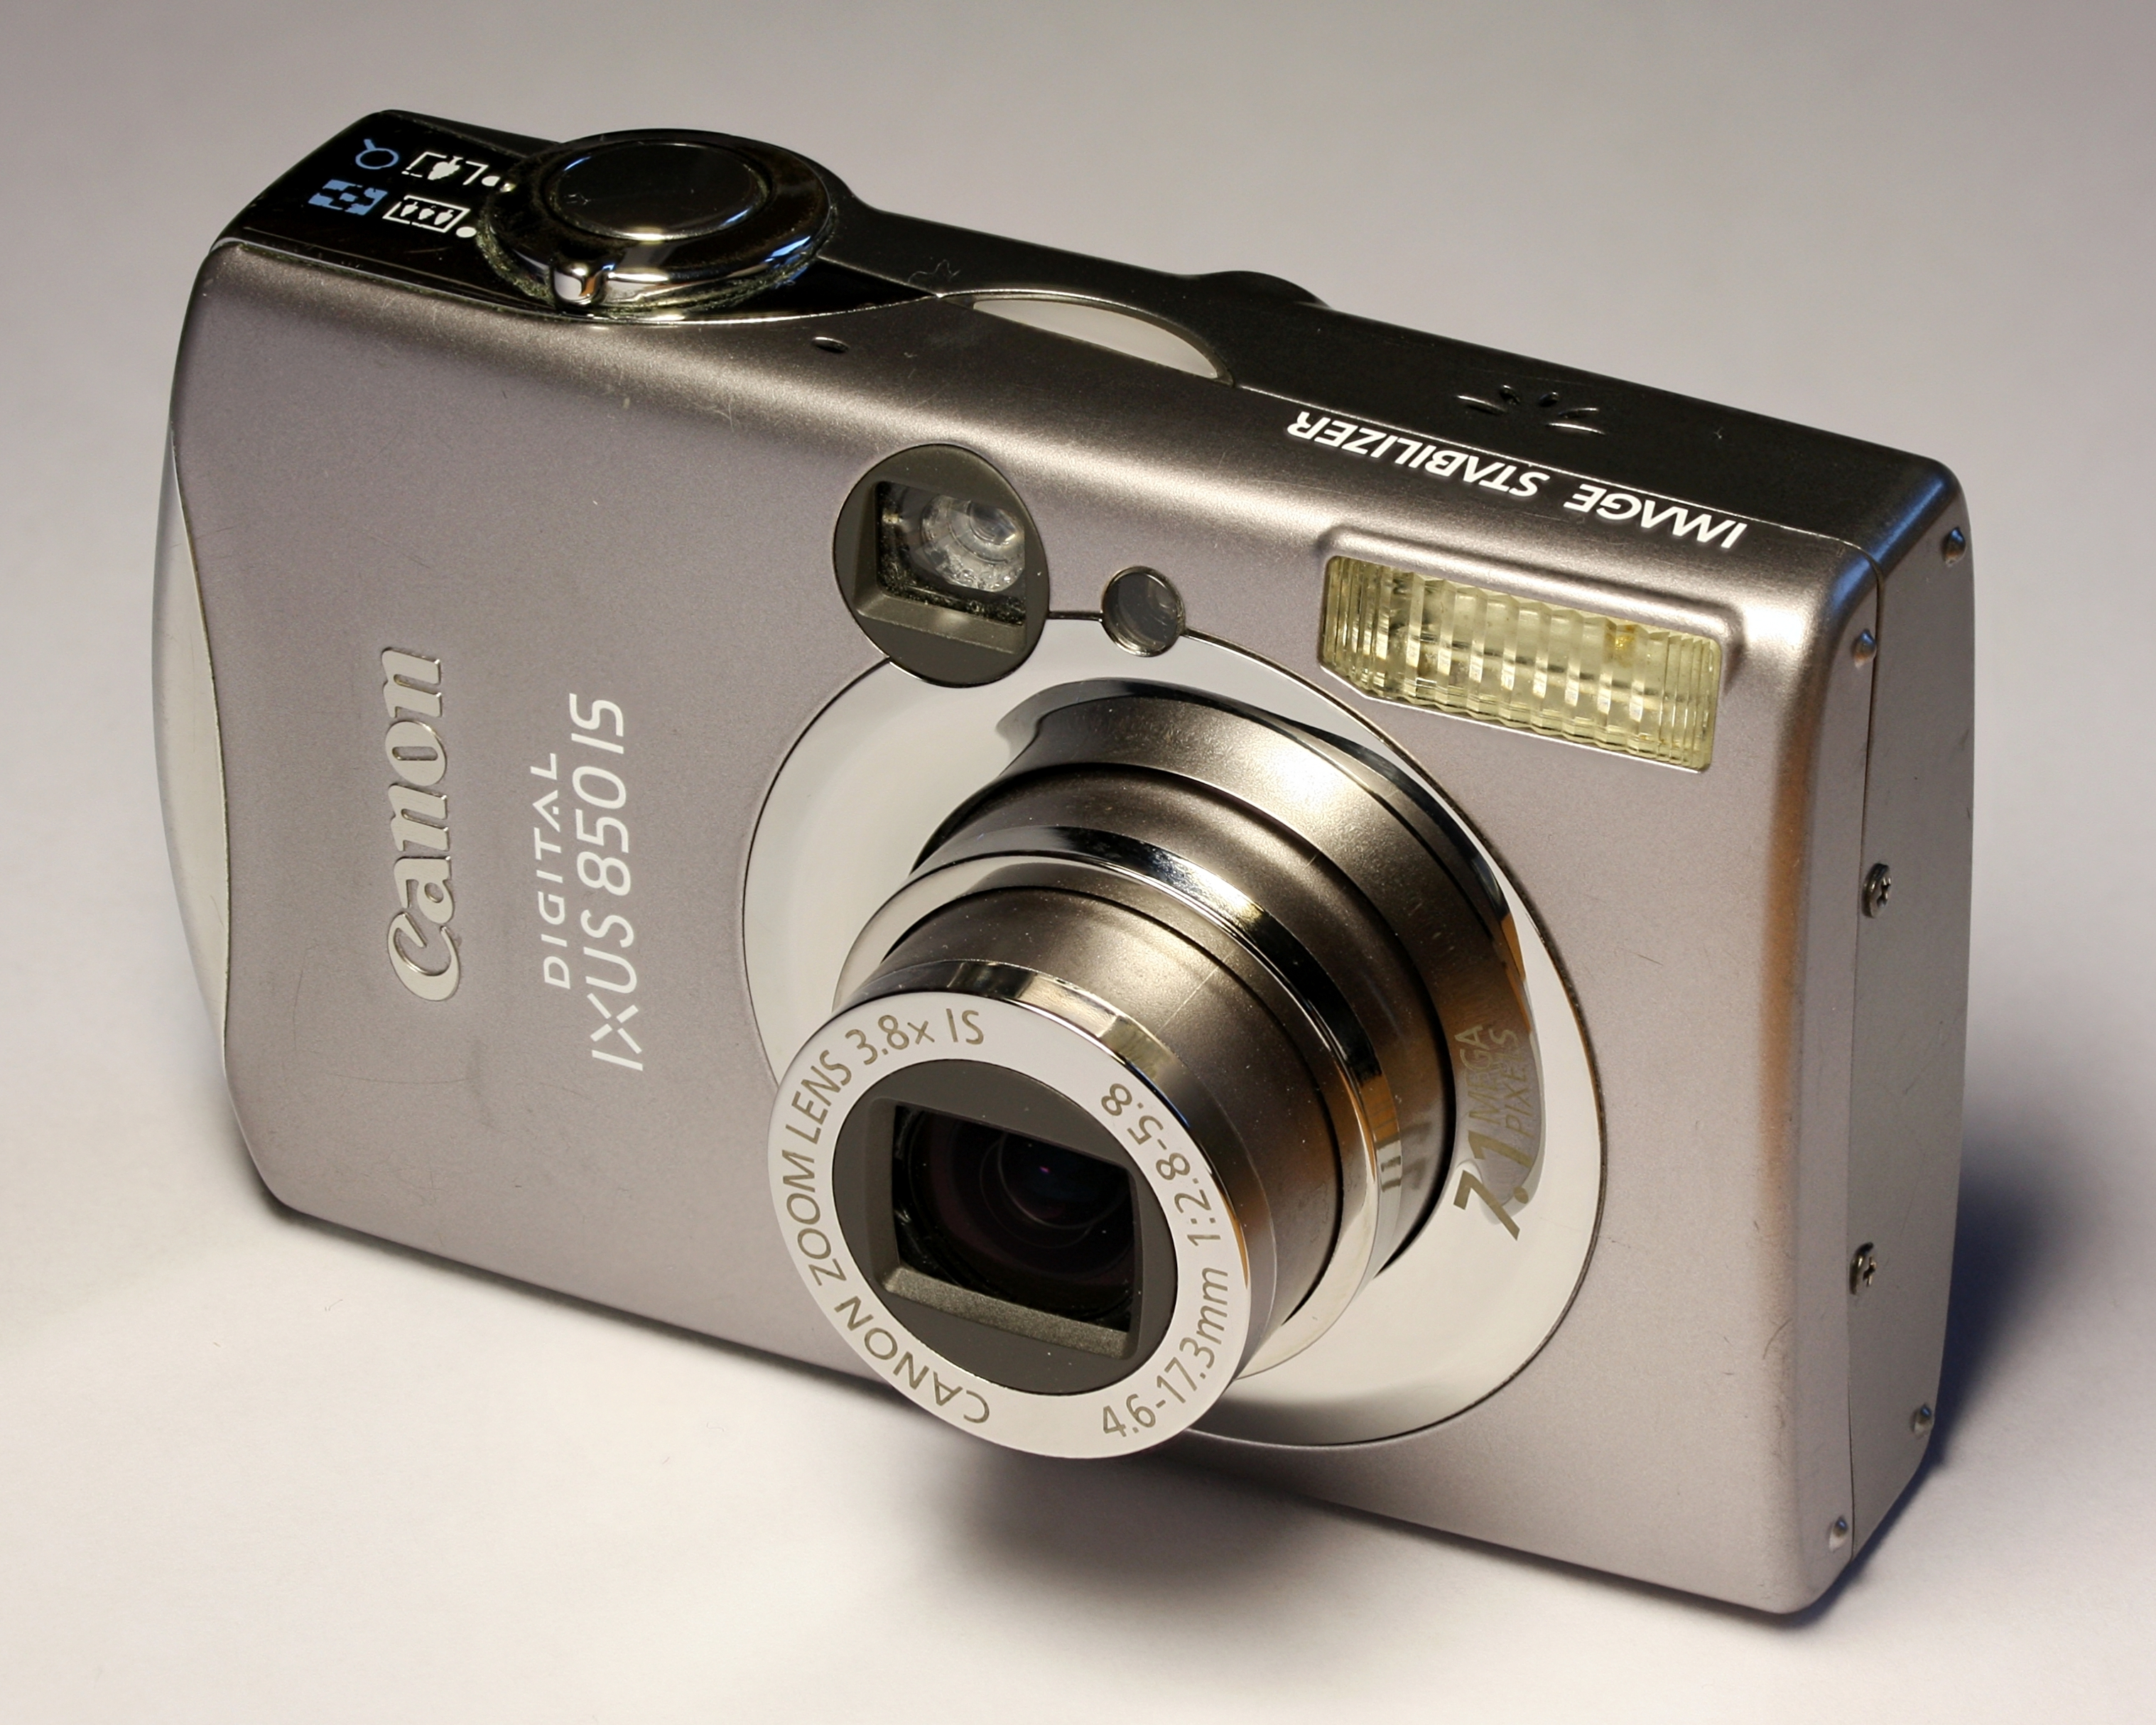 File:Canon Digital IXUS 850 IS-ar 5to4-fs PNr°0268b.